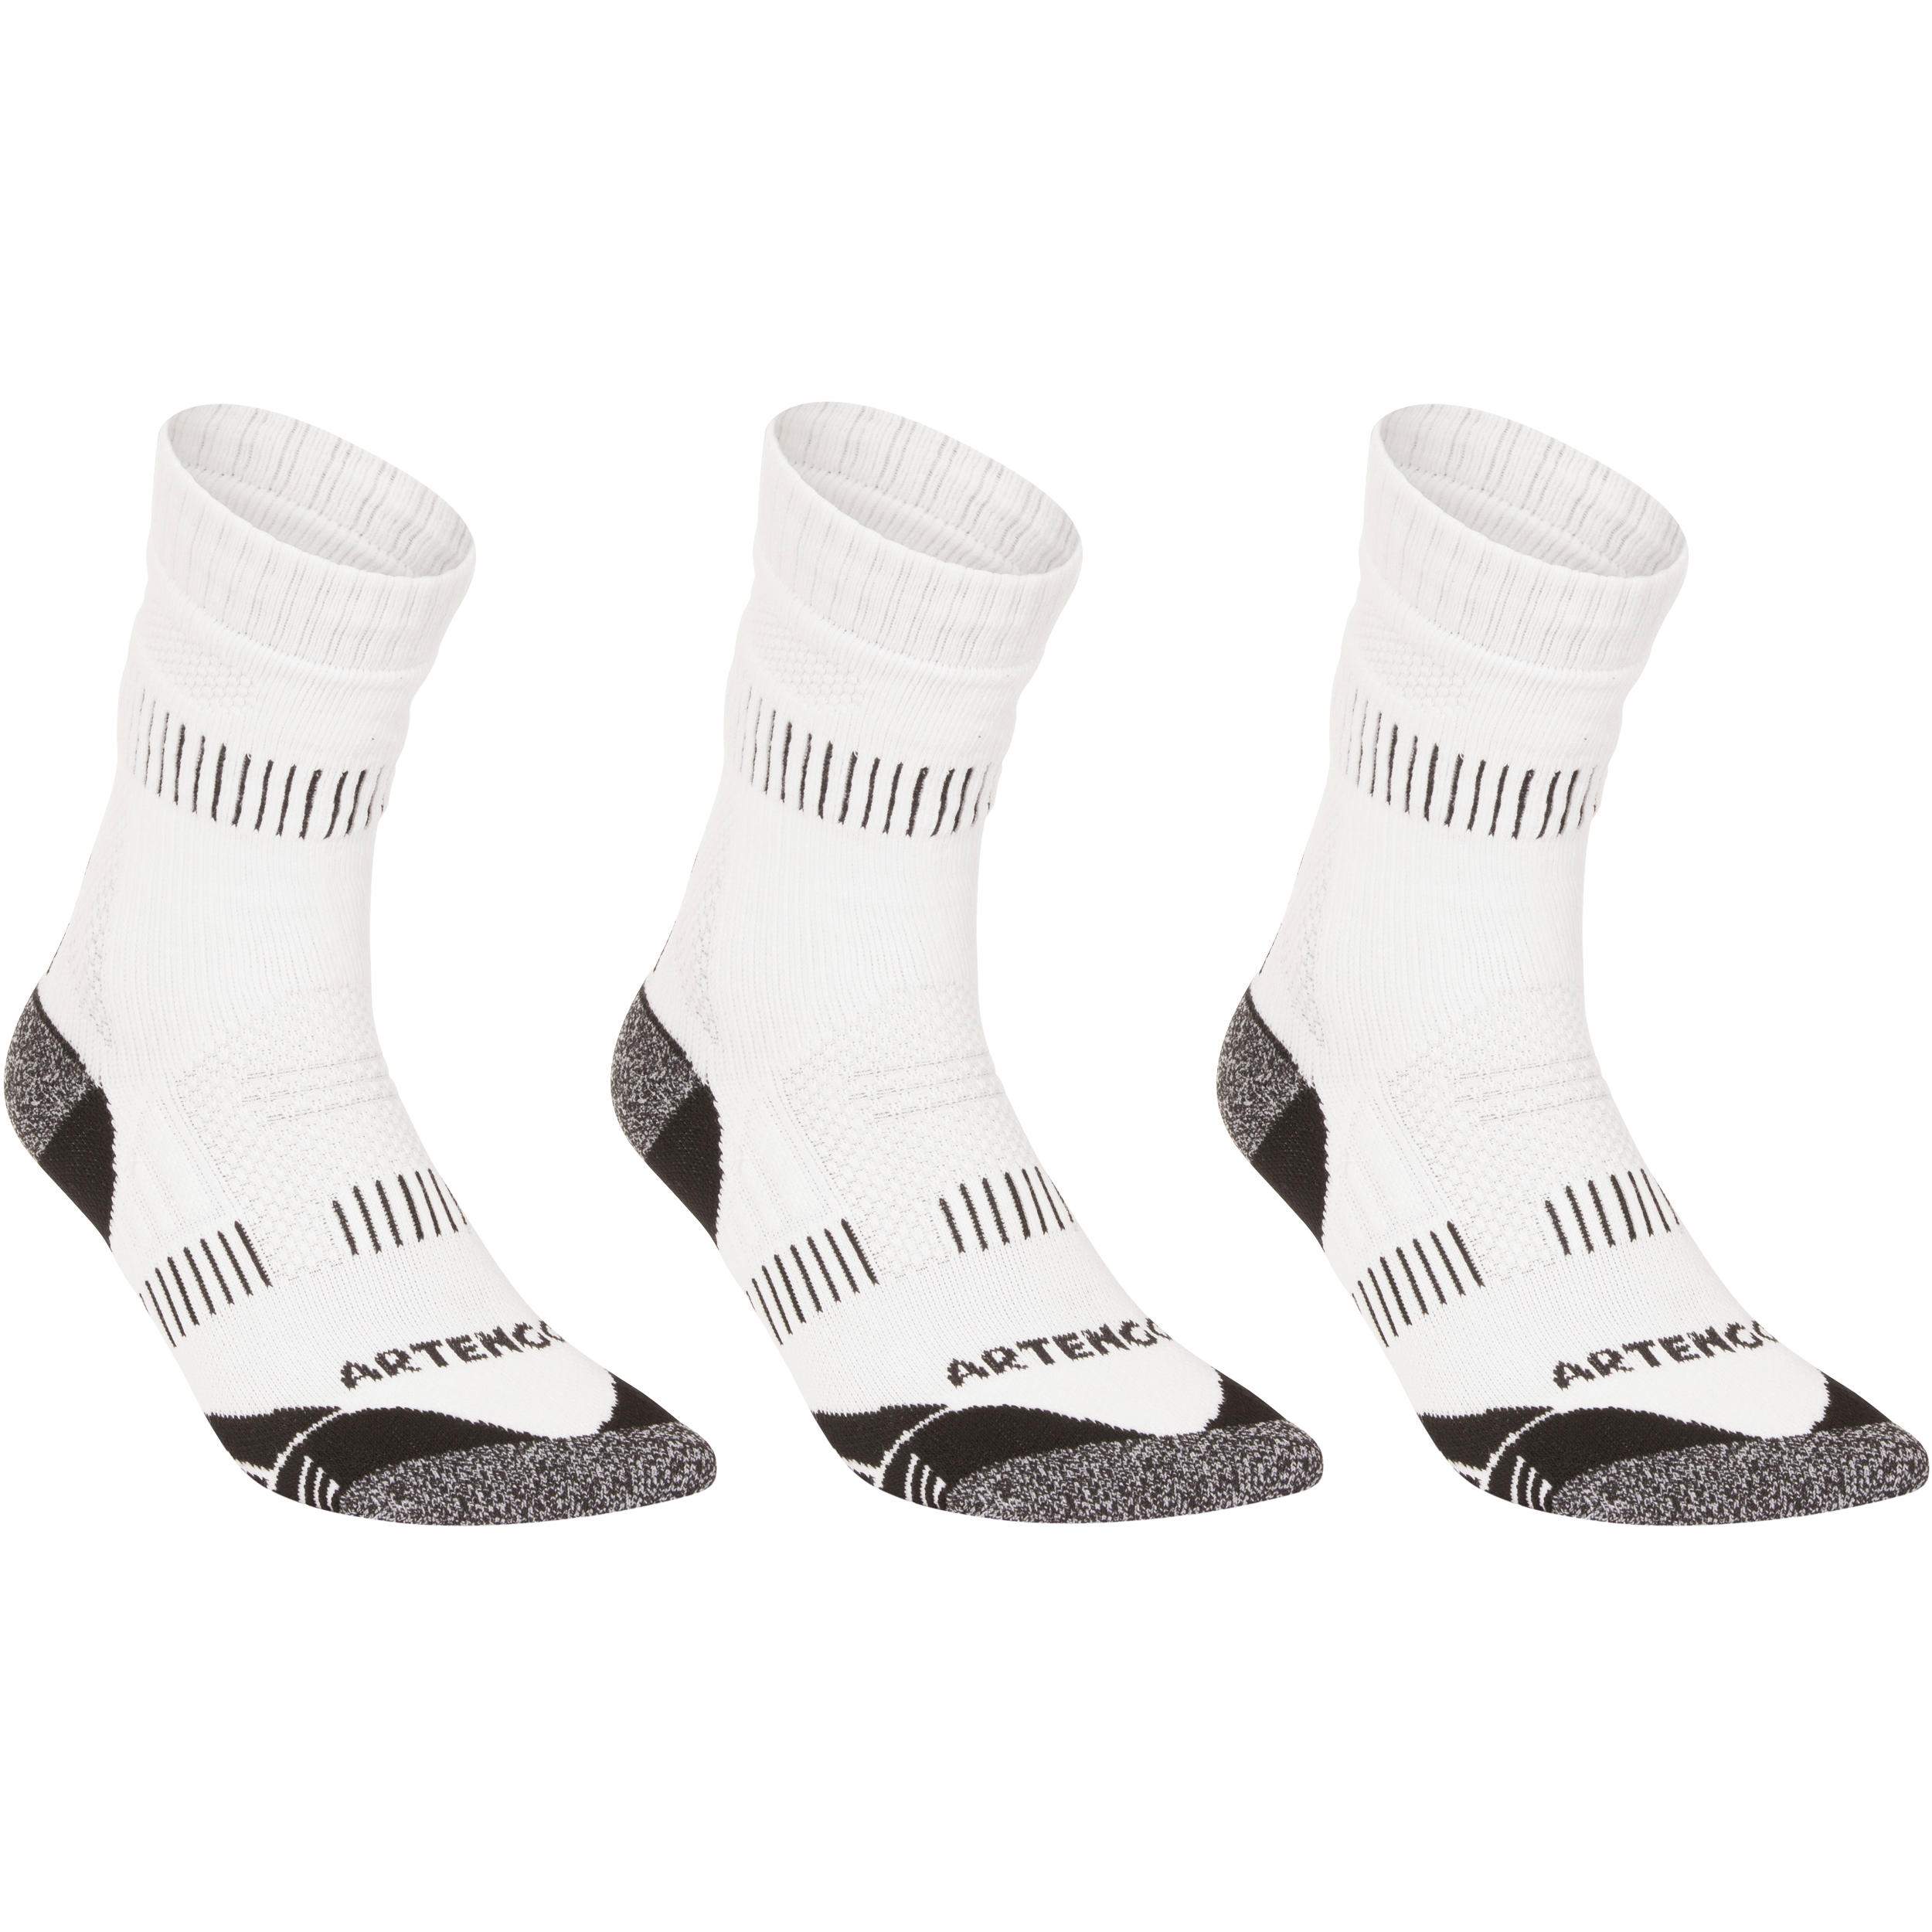 RS 900 Adult High Sport Socks 3-Pack - White/Grey